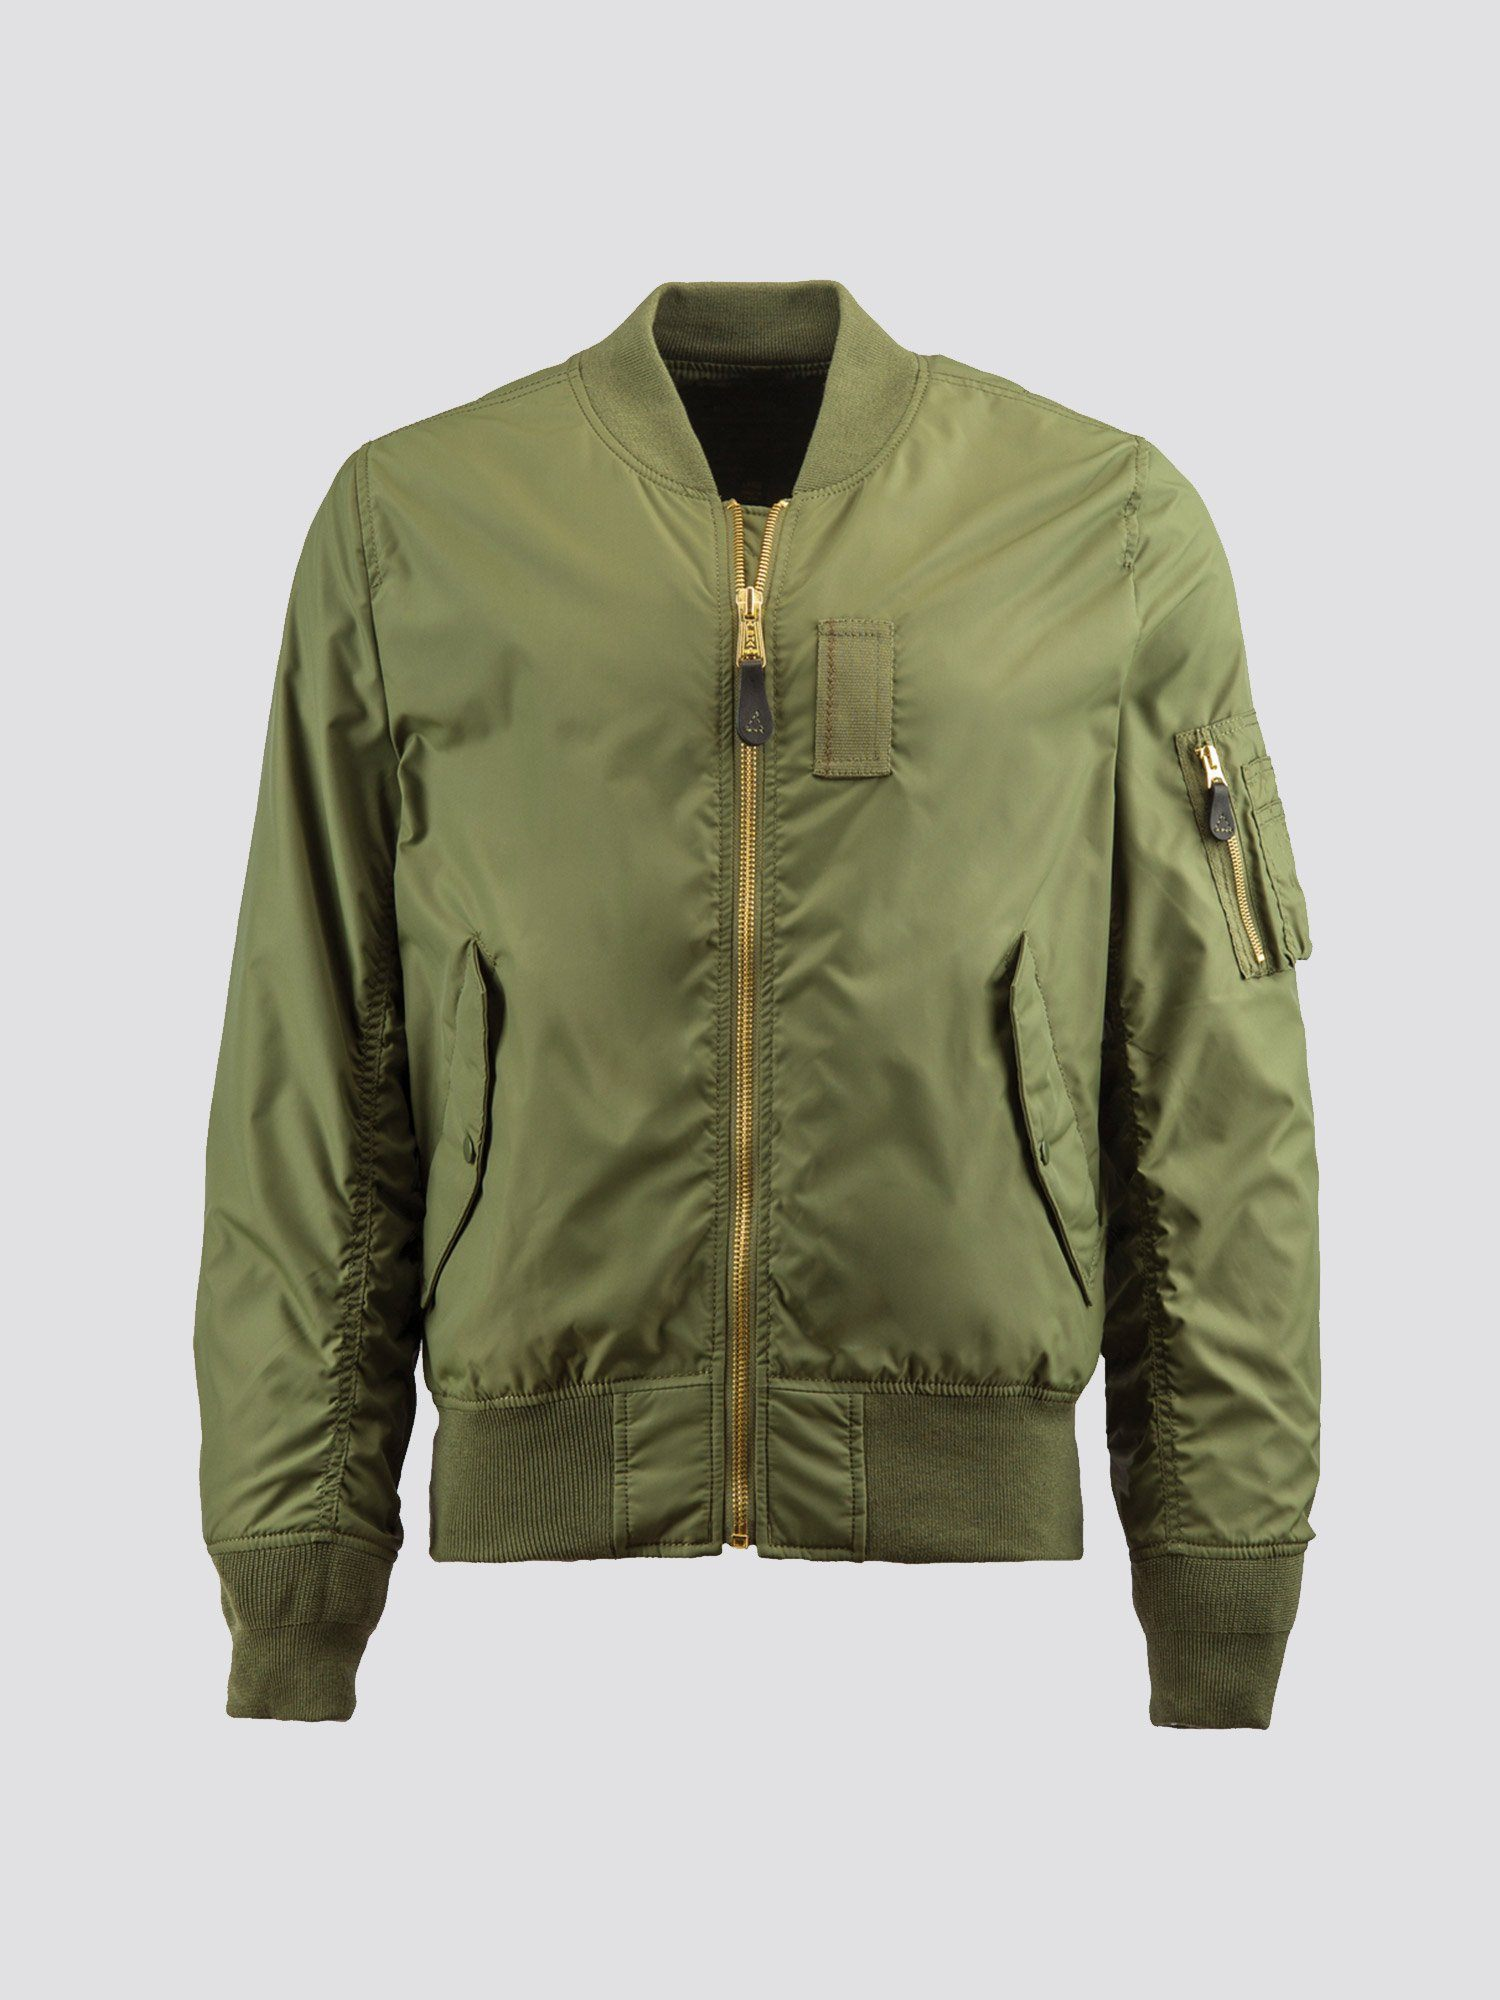 Alpha Industries MA-1 Skymaster Lightweight Flight Jacket Replica Blue MSRP $140